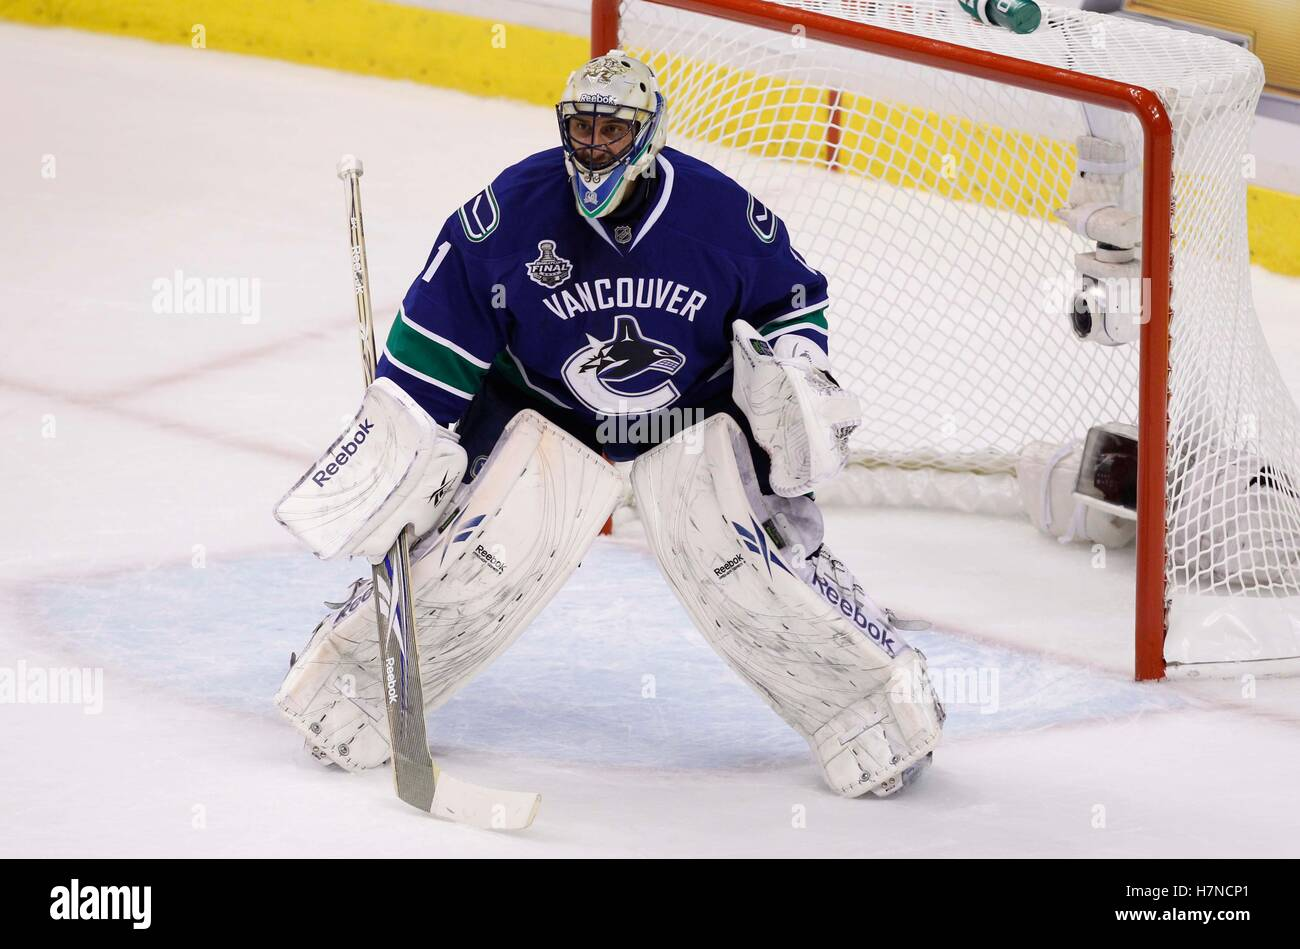 June 1 2011 Vancouver Bc Canada Vancouver Canucks Goalie